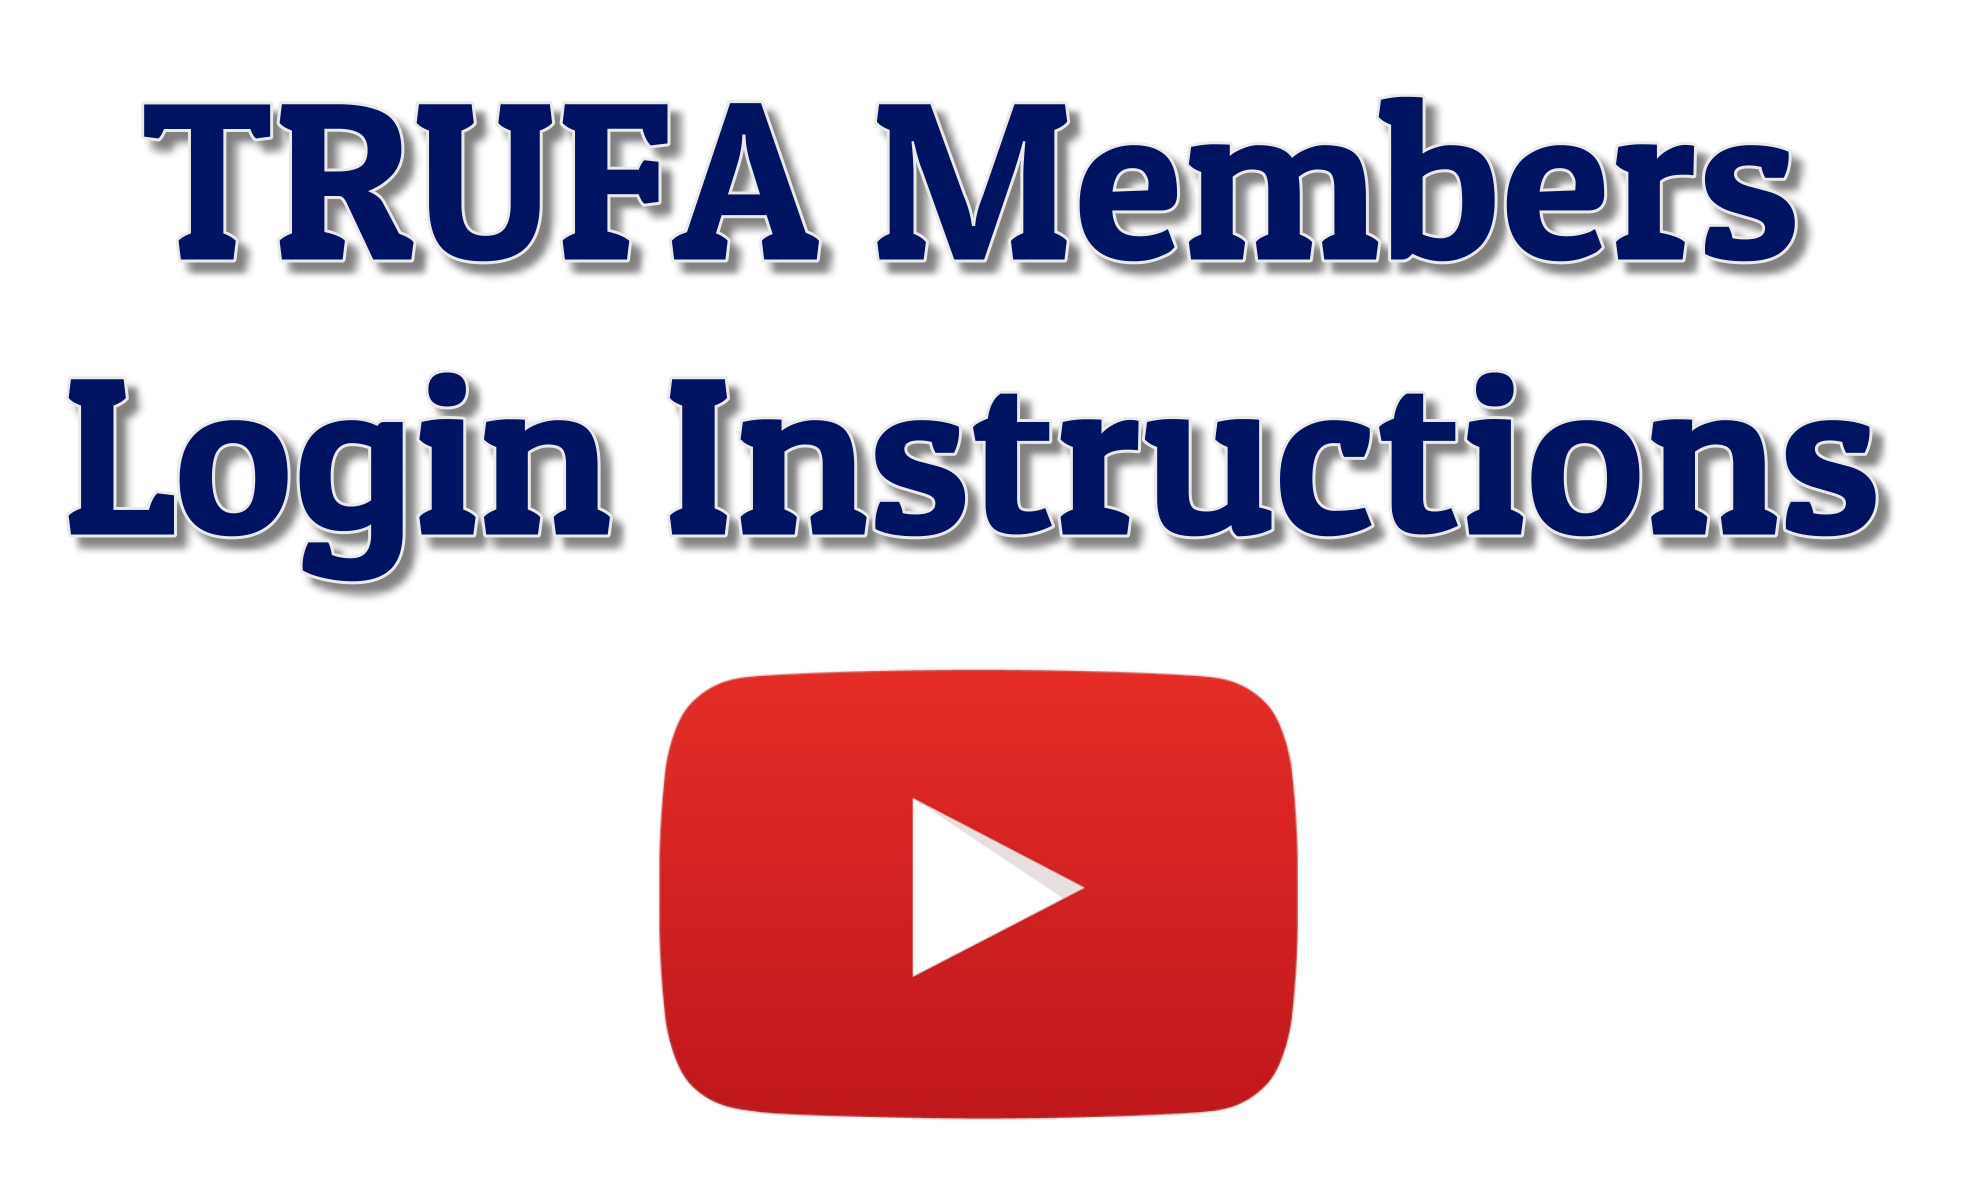 TRUFA Members Login Instructions